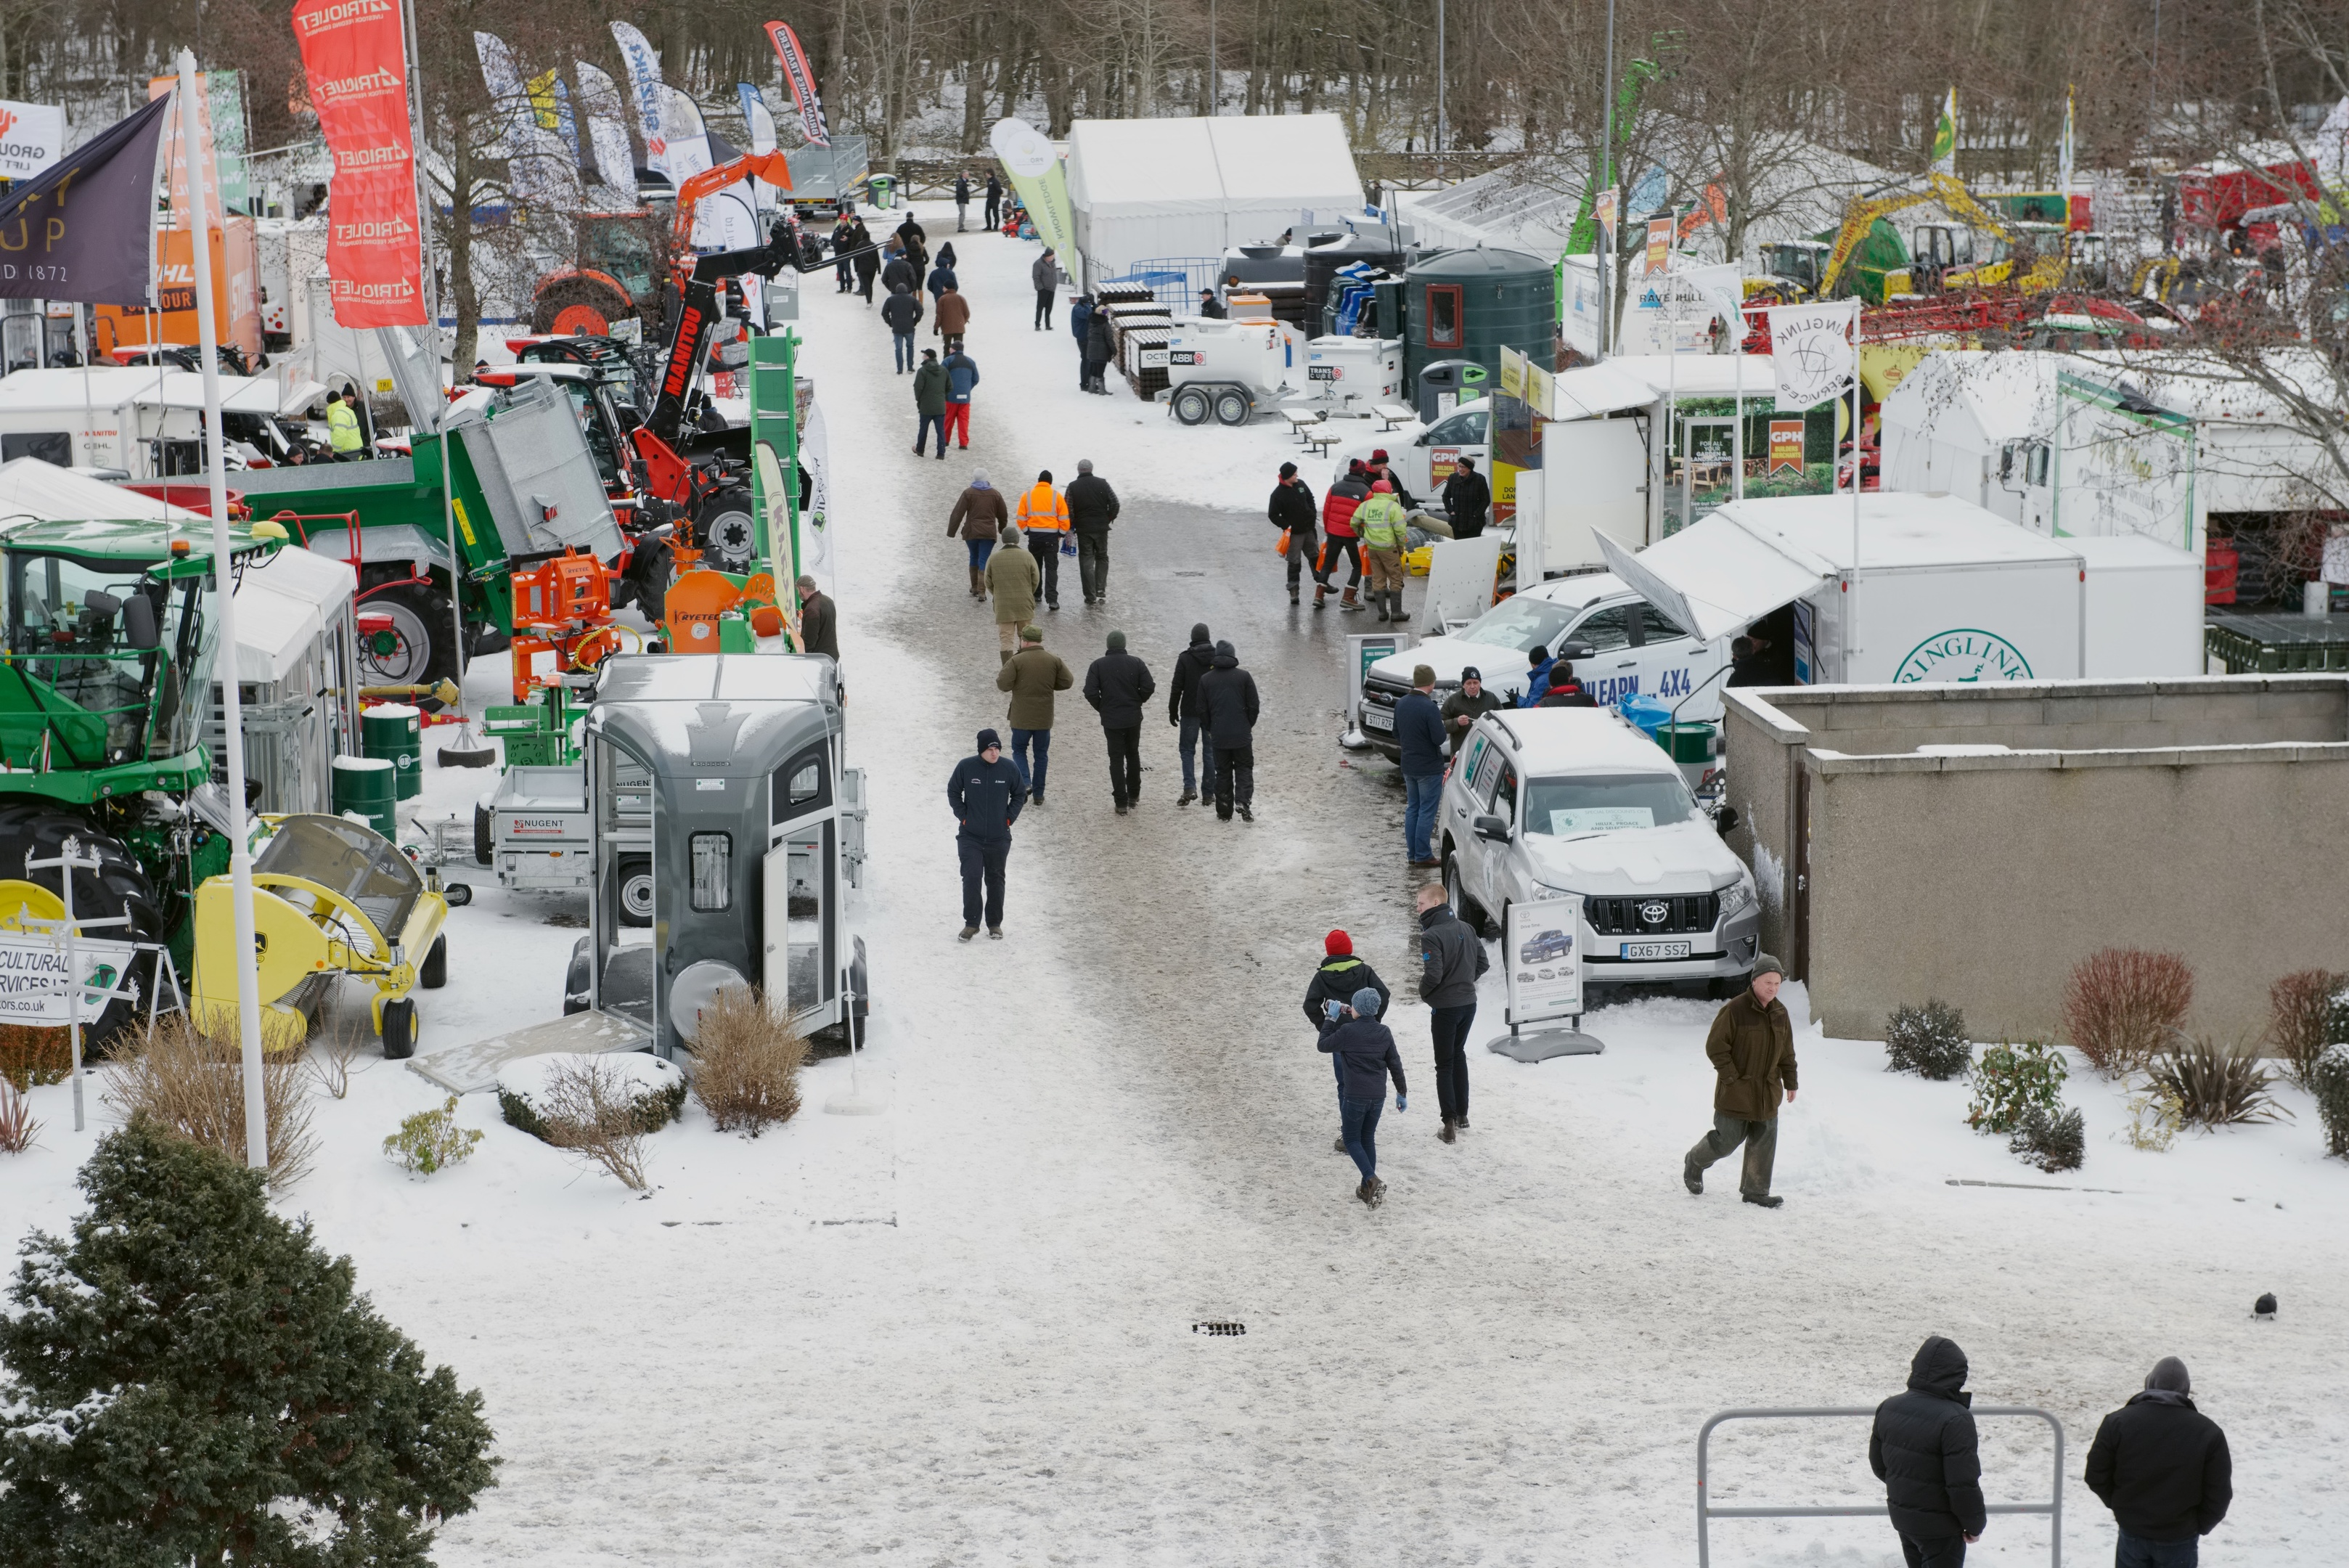 Farmers braved the snow for the Royal Northern Spring Show